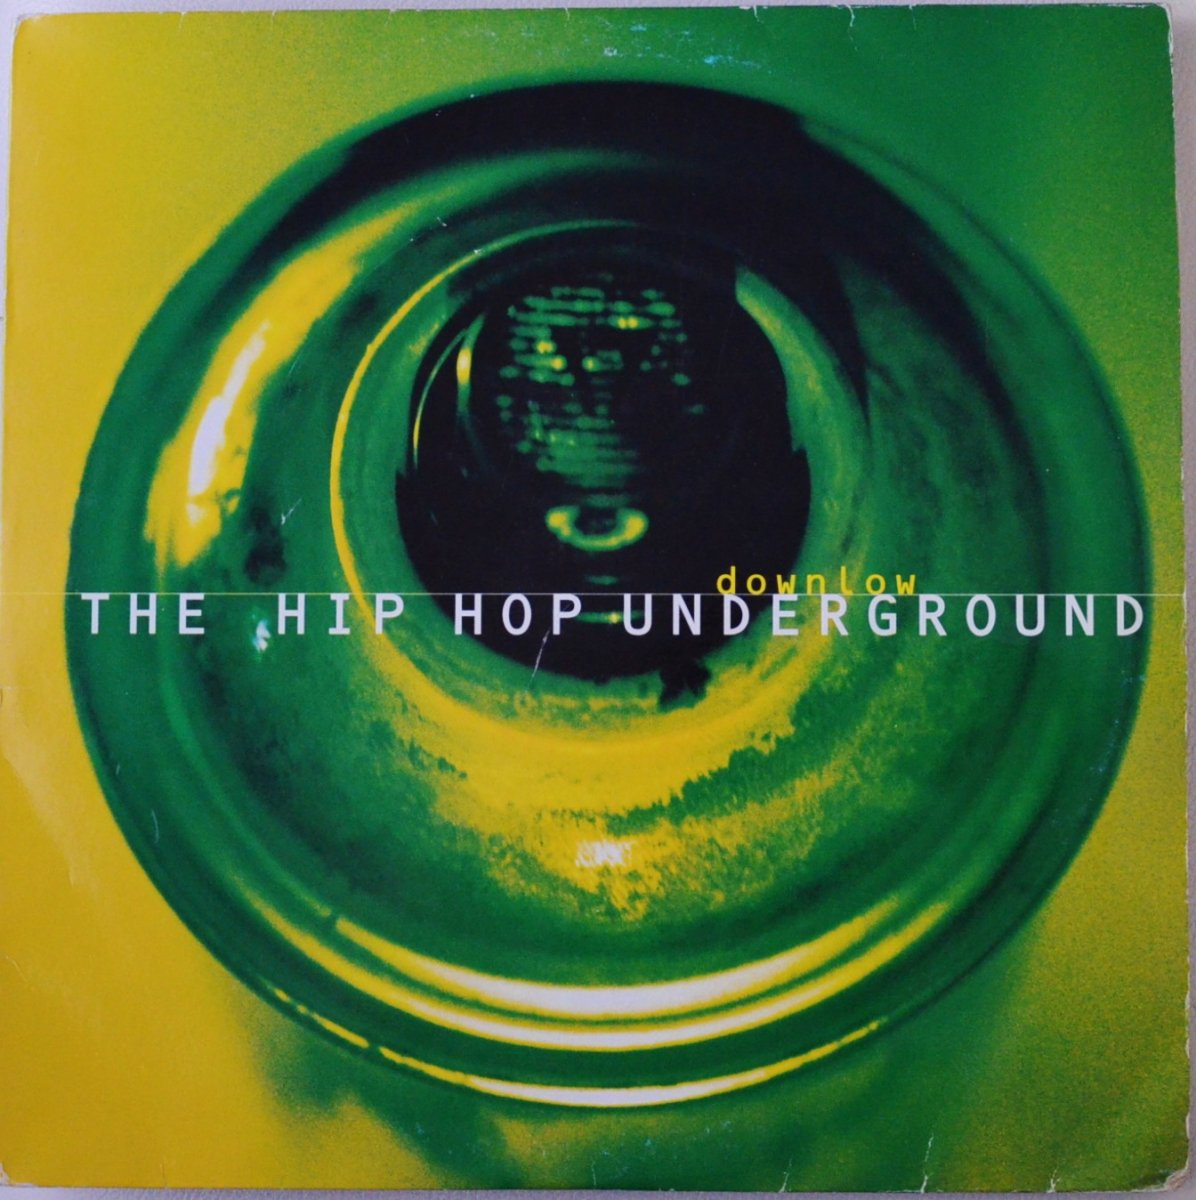 V.A.(GODFATHER DON,FRANKENSTEIN...) / I WAS FORGOTTEN (DOWNLOW - THE HIP HOP UNDERGROUND) (2LP)